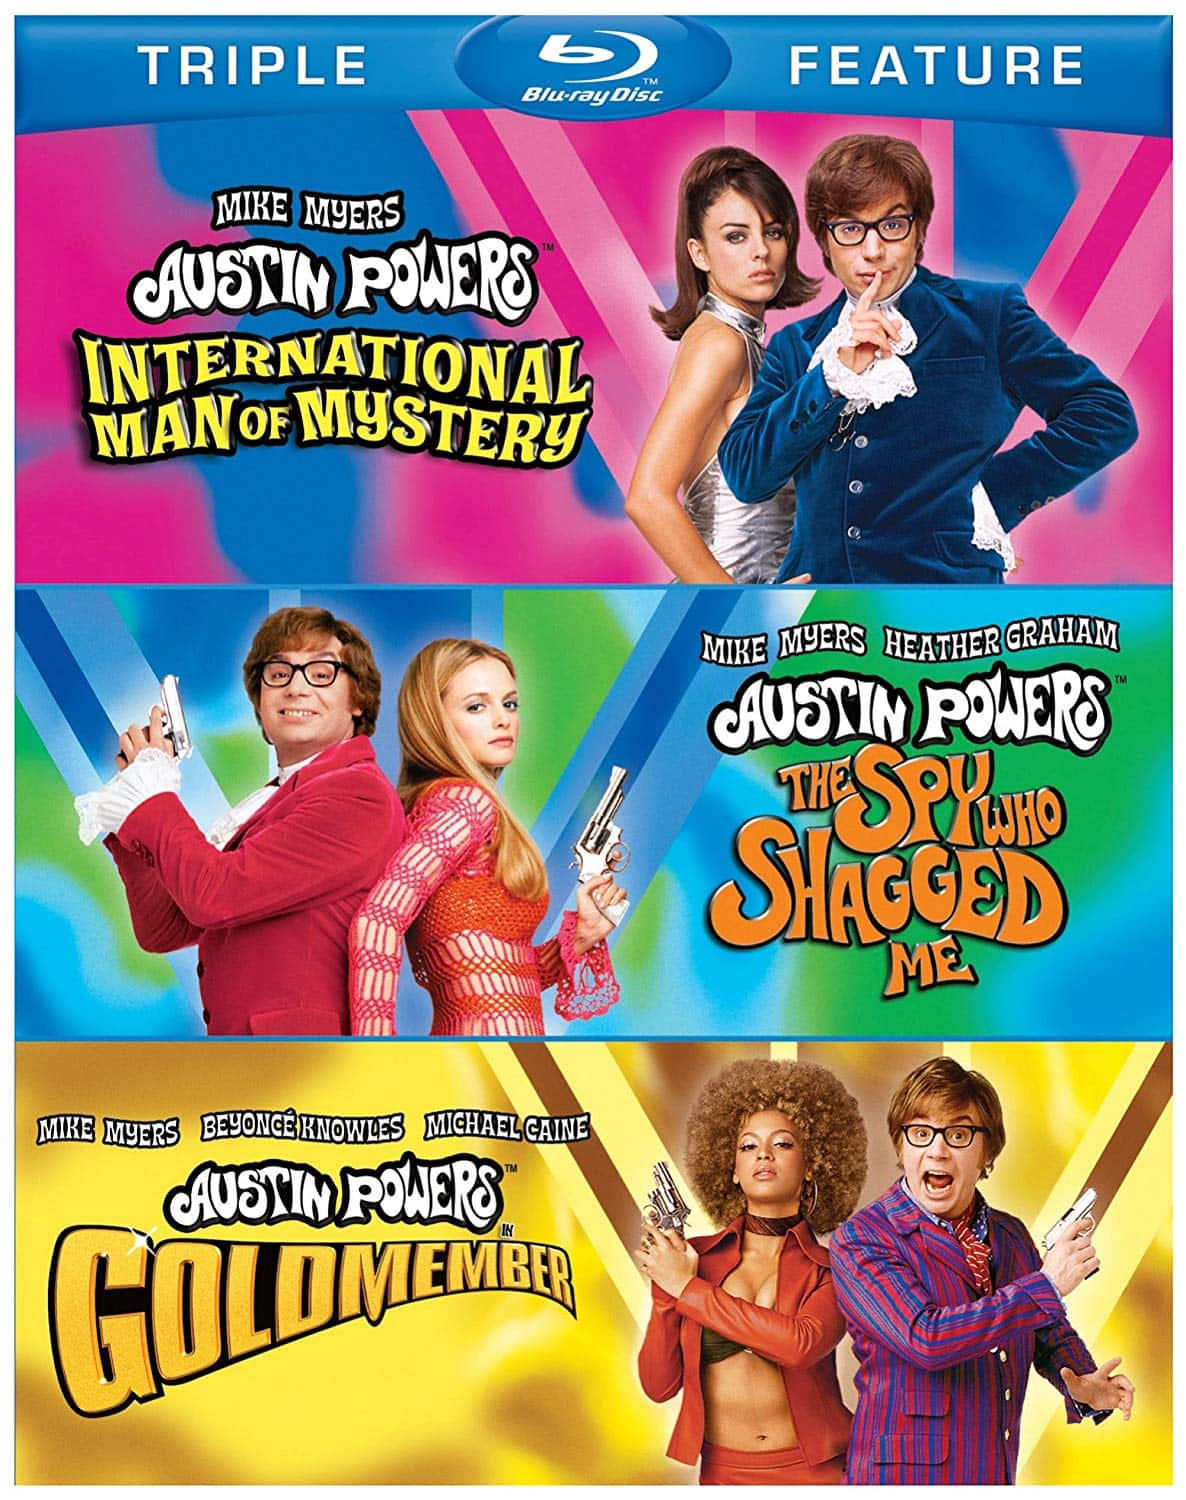 Austin Powers: Triple Feature: International Many of Mystery, The Spy Who Shagged Me & Gold Member (Blu-Ray) $8 + Free Shipping for Amazon Prime Members